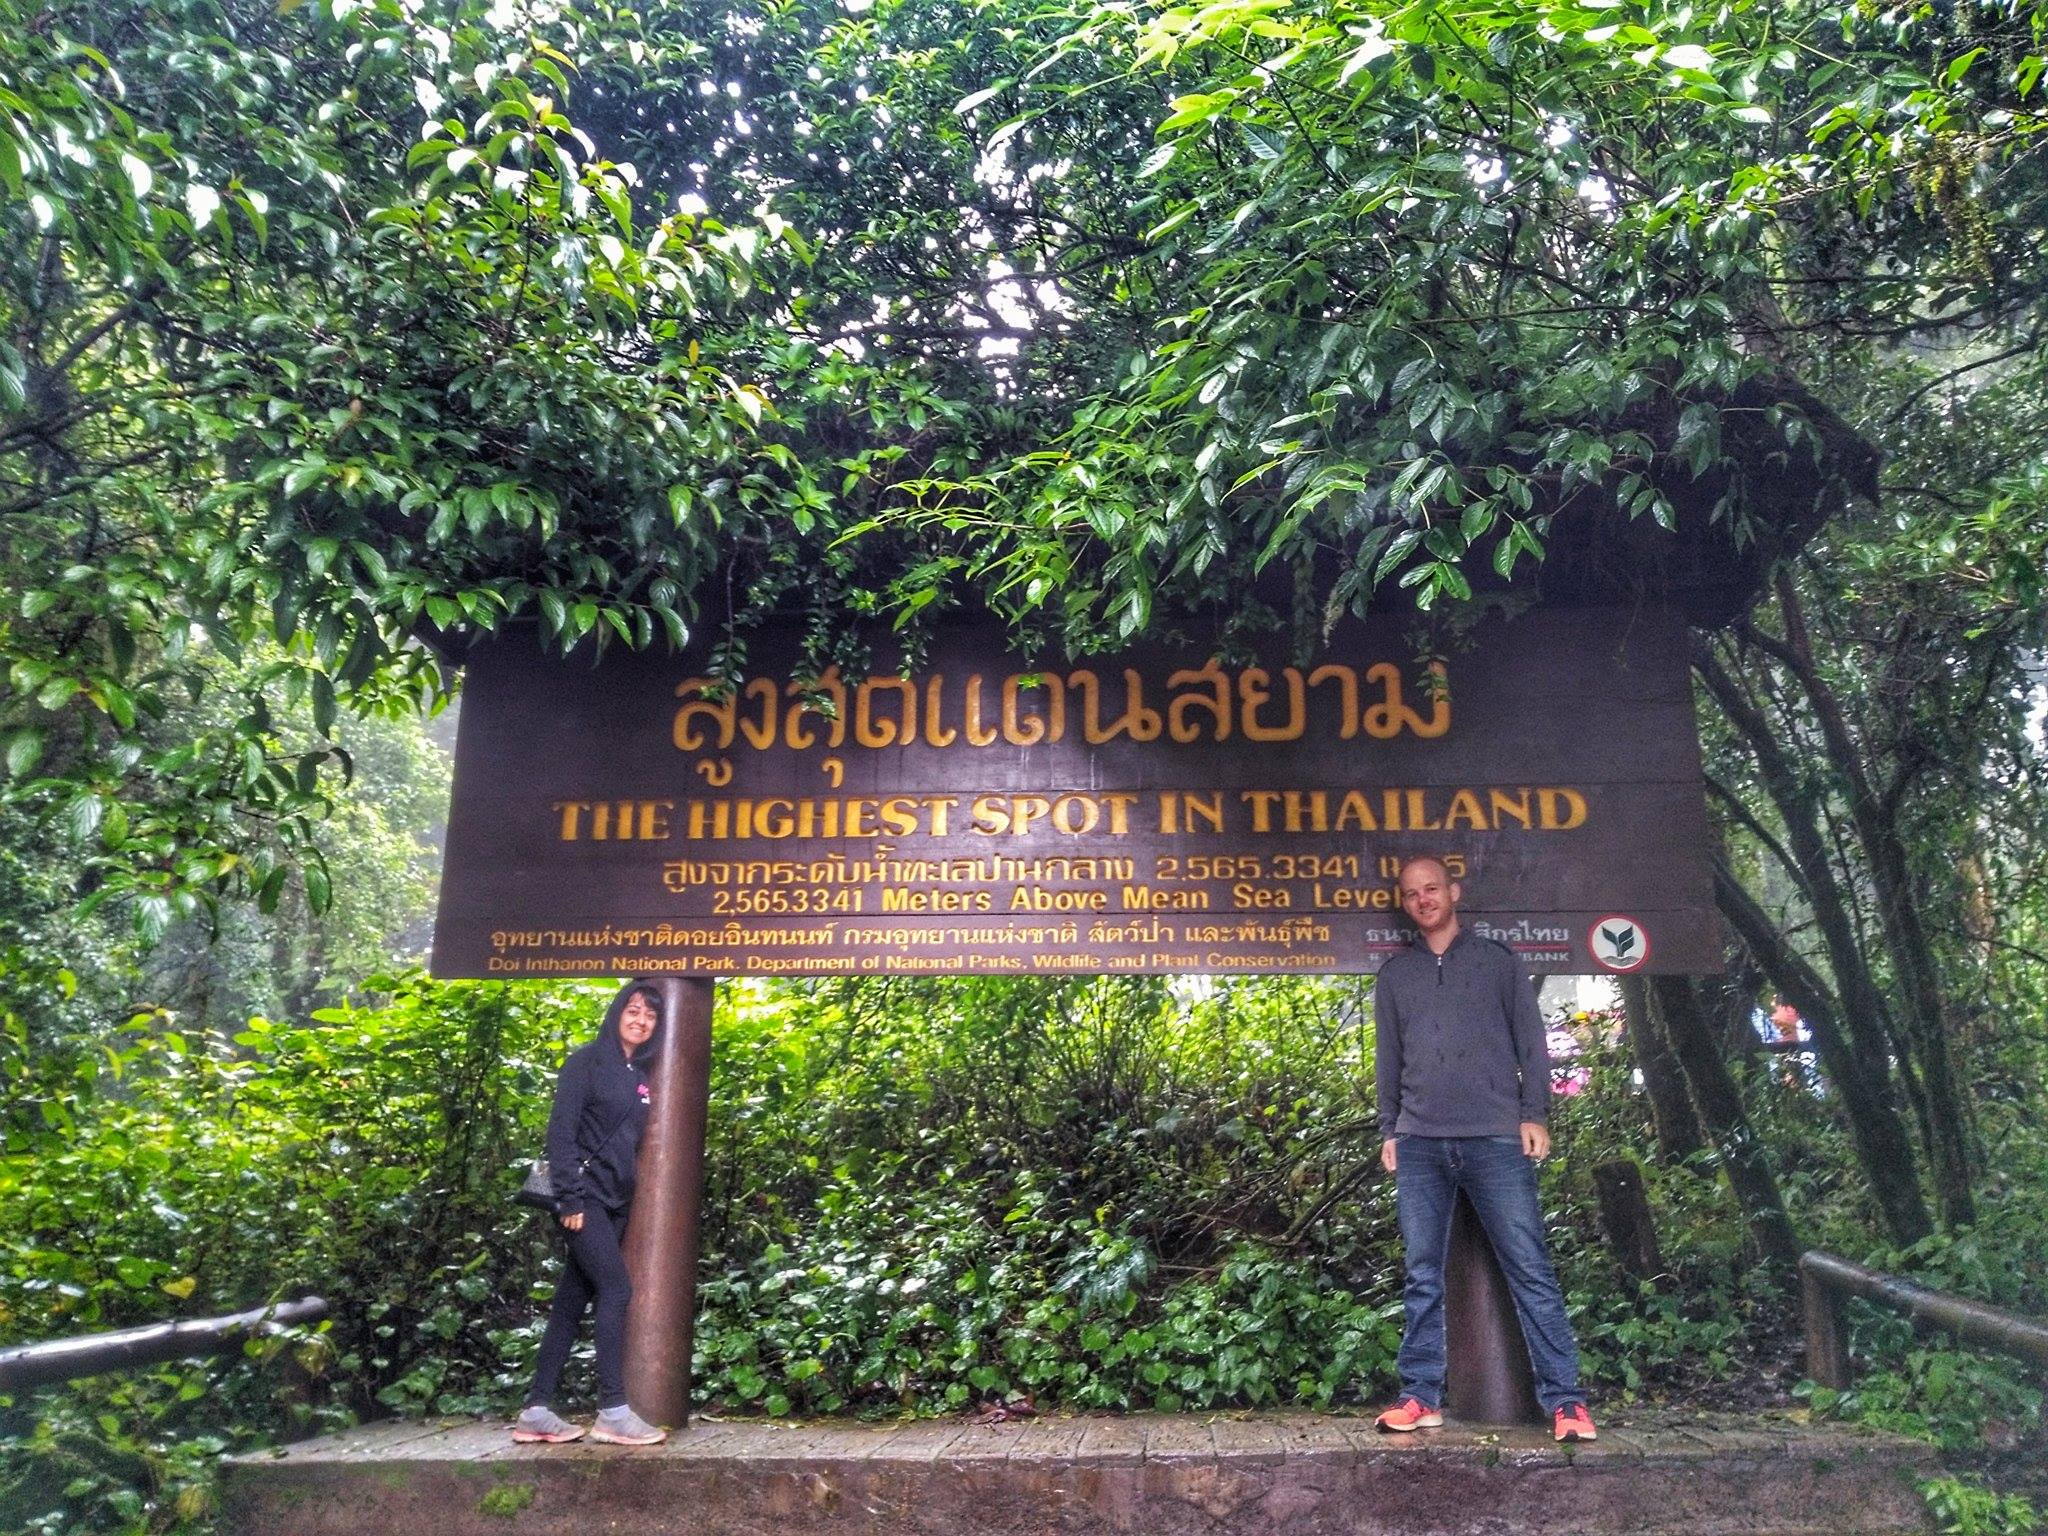 thailand highest peak- Doi Inthanon Summit